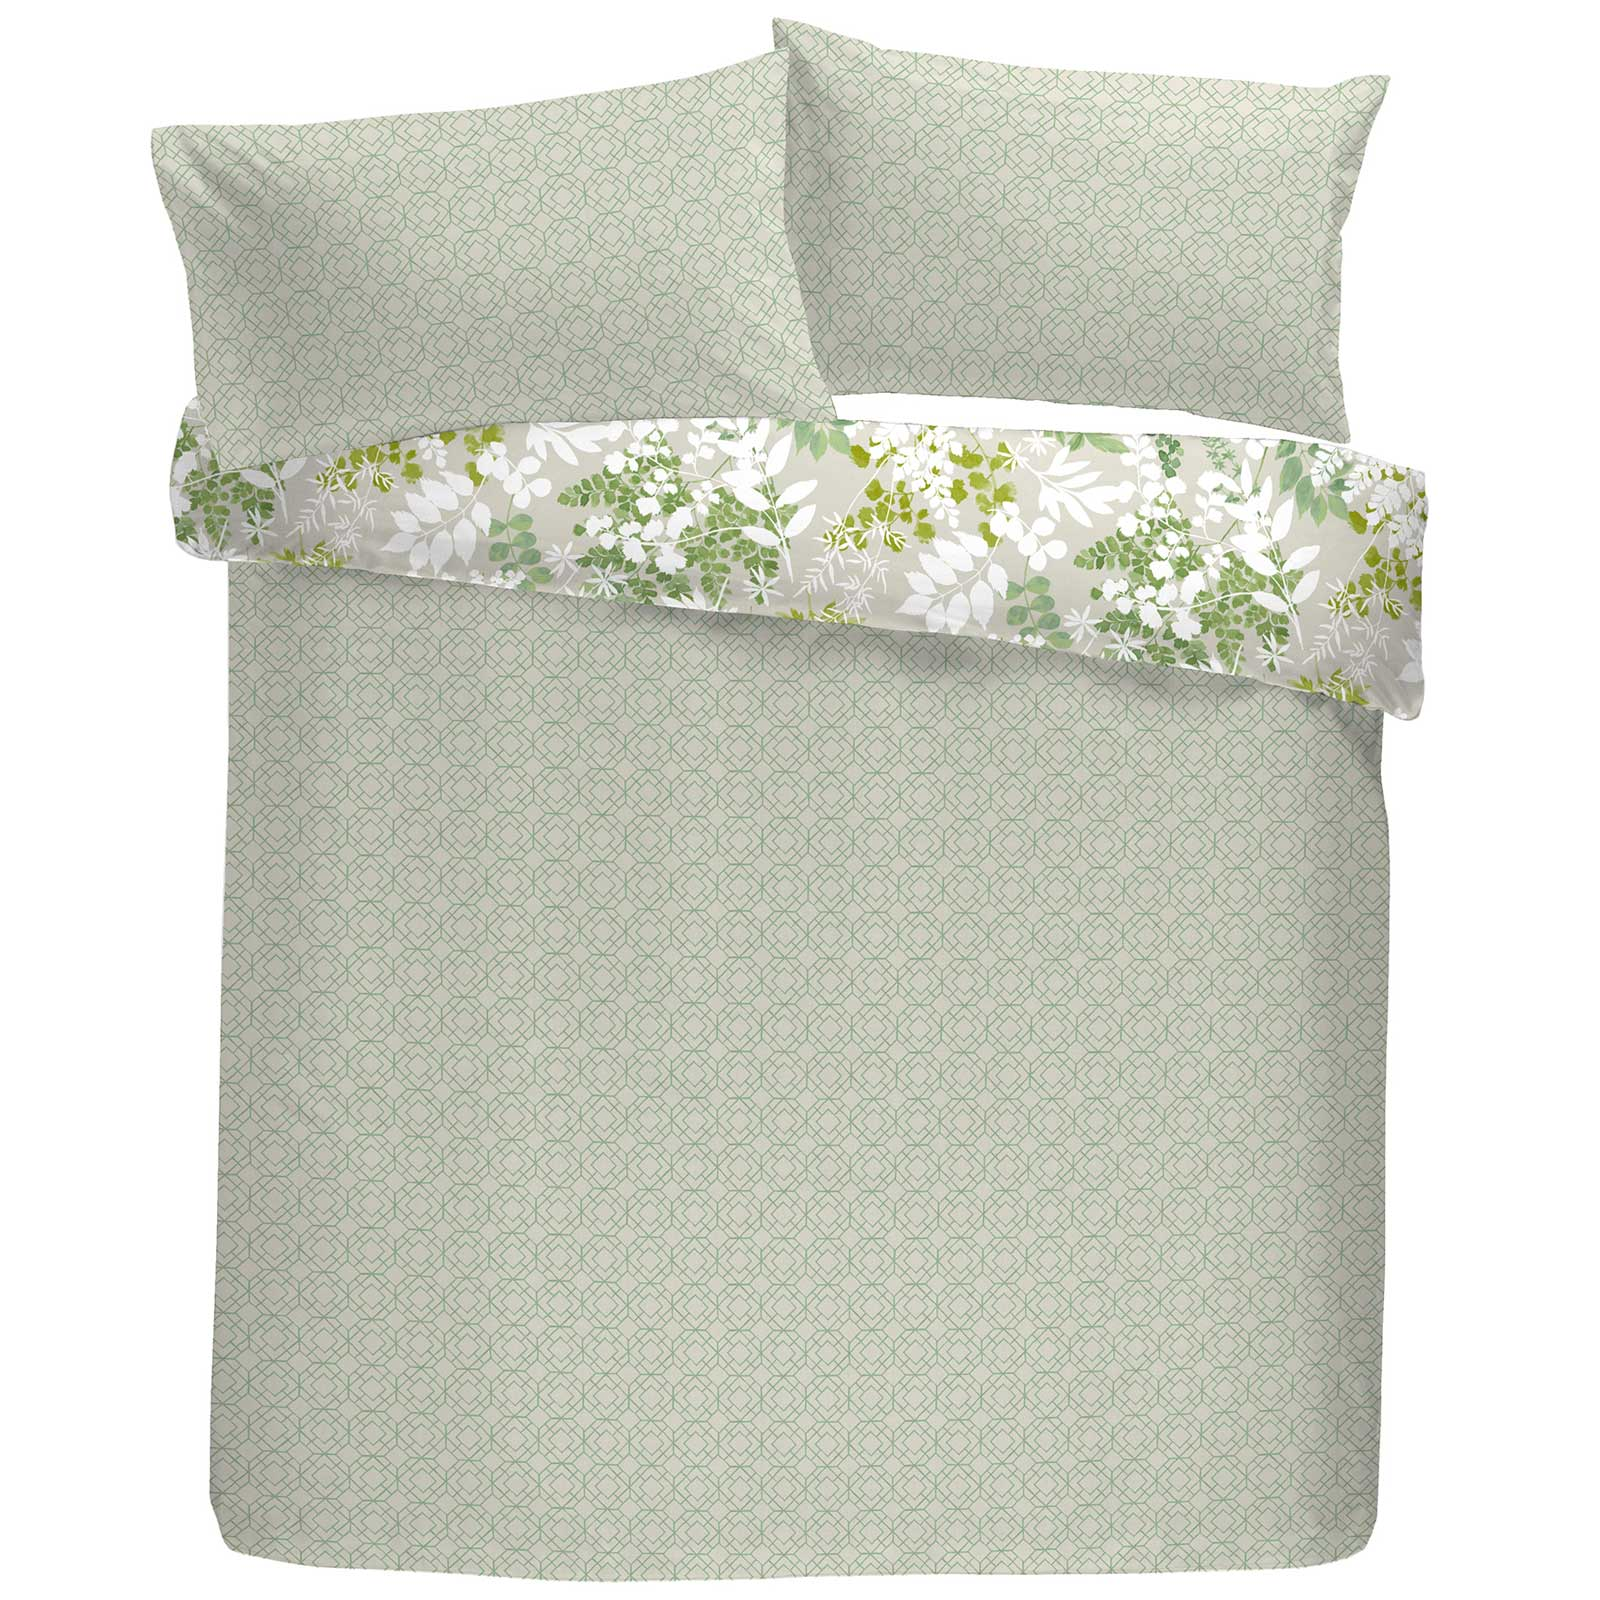 Delamere Botanical Leaf Reversible Green Duvet Cover Set -  - Ideal Textiles